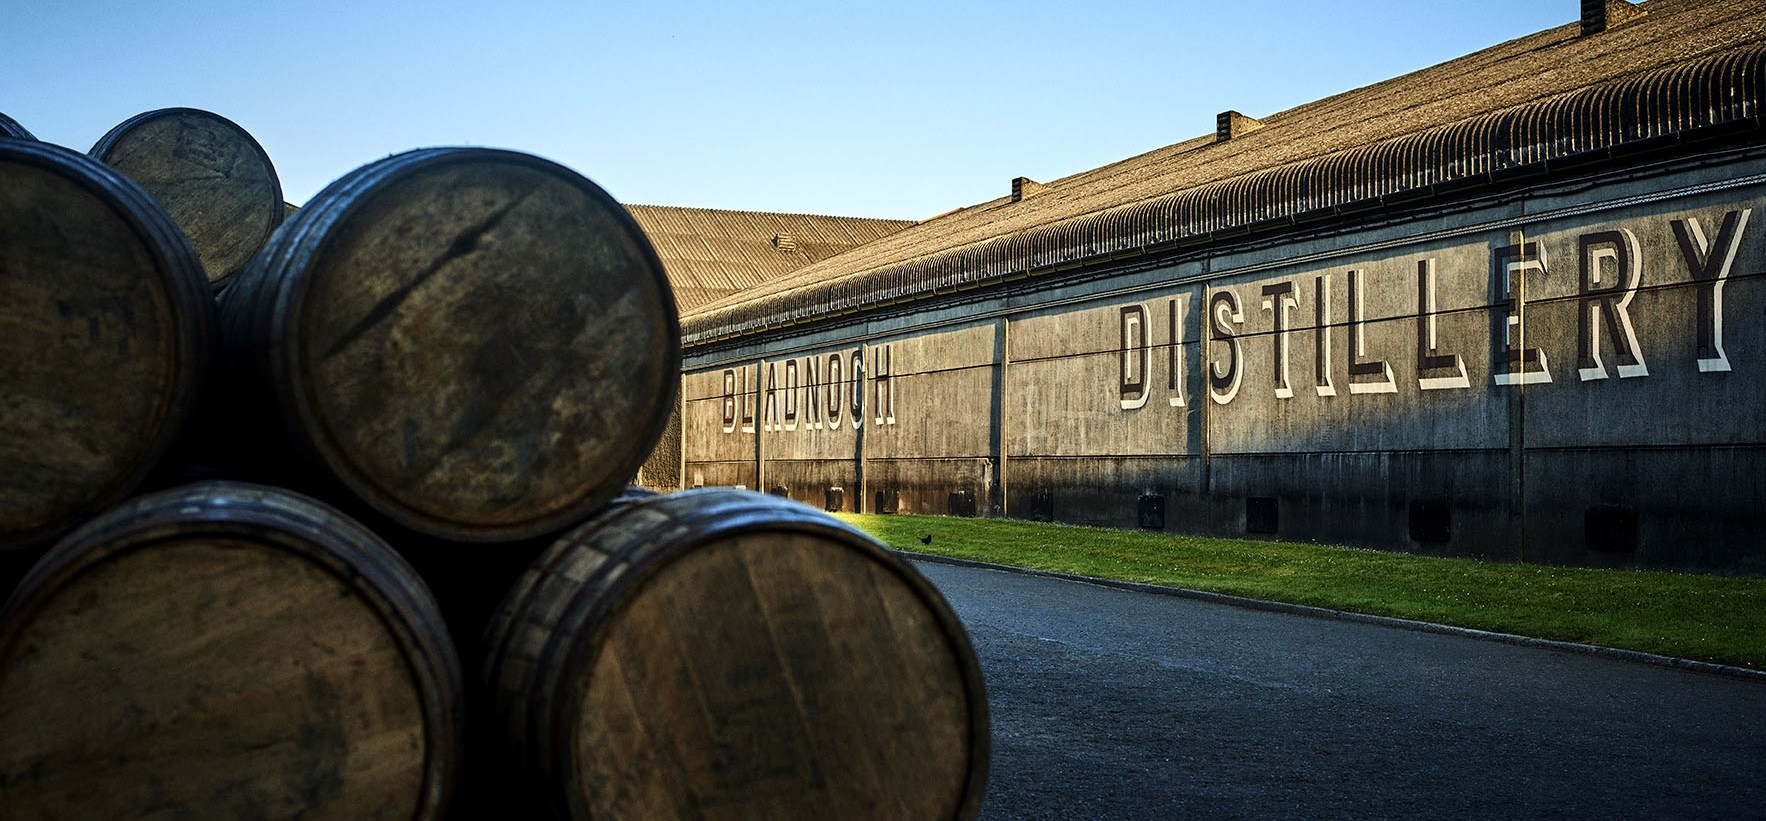 Bladnoch Distillery Tour And Whisky Tasting